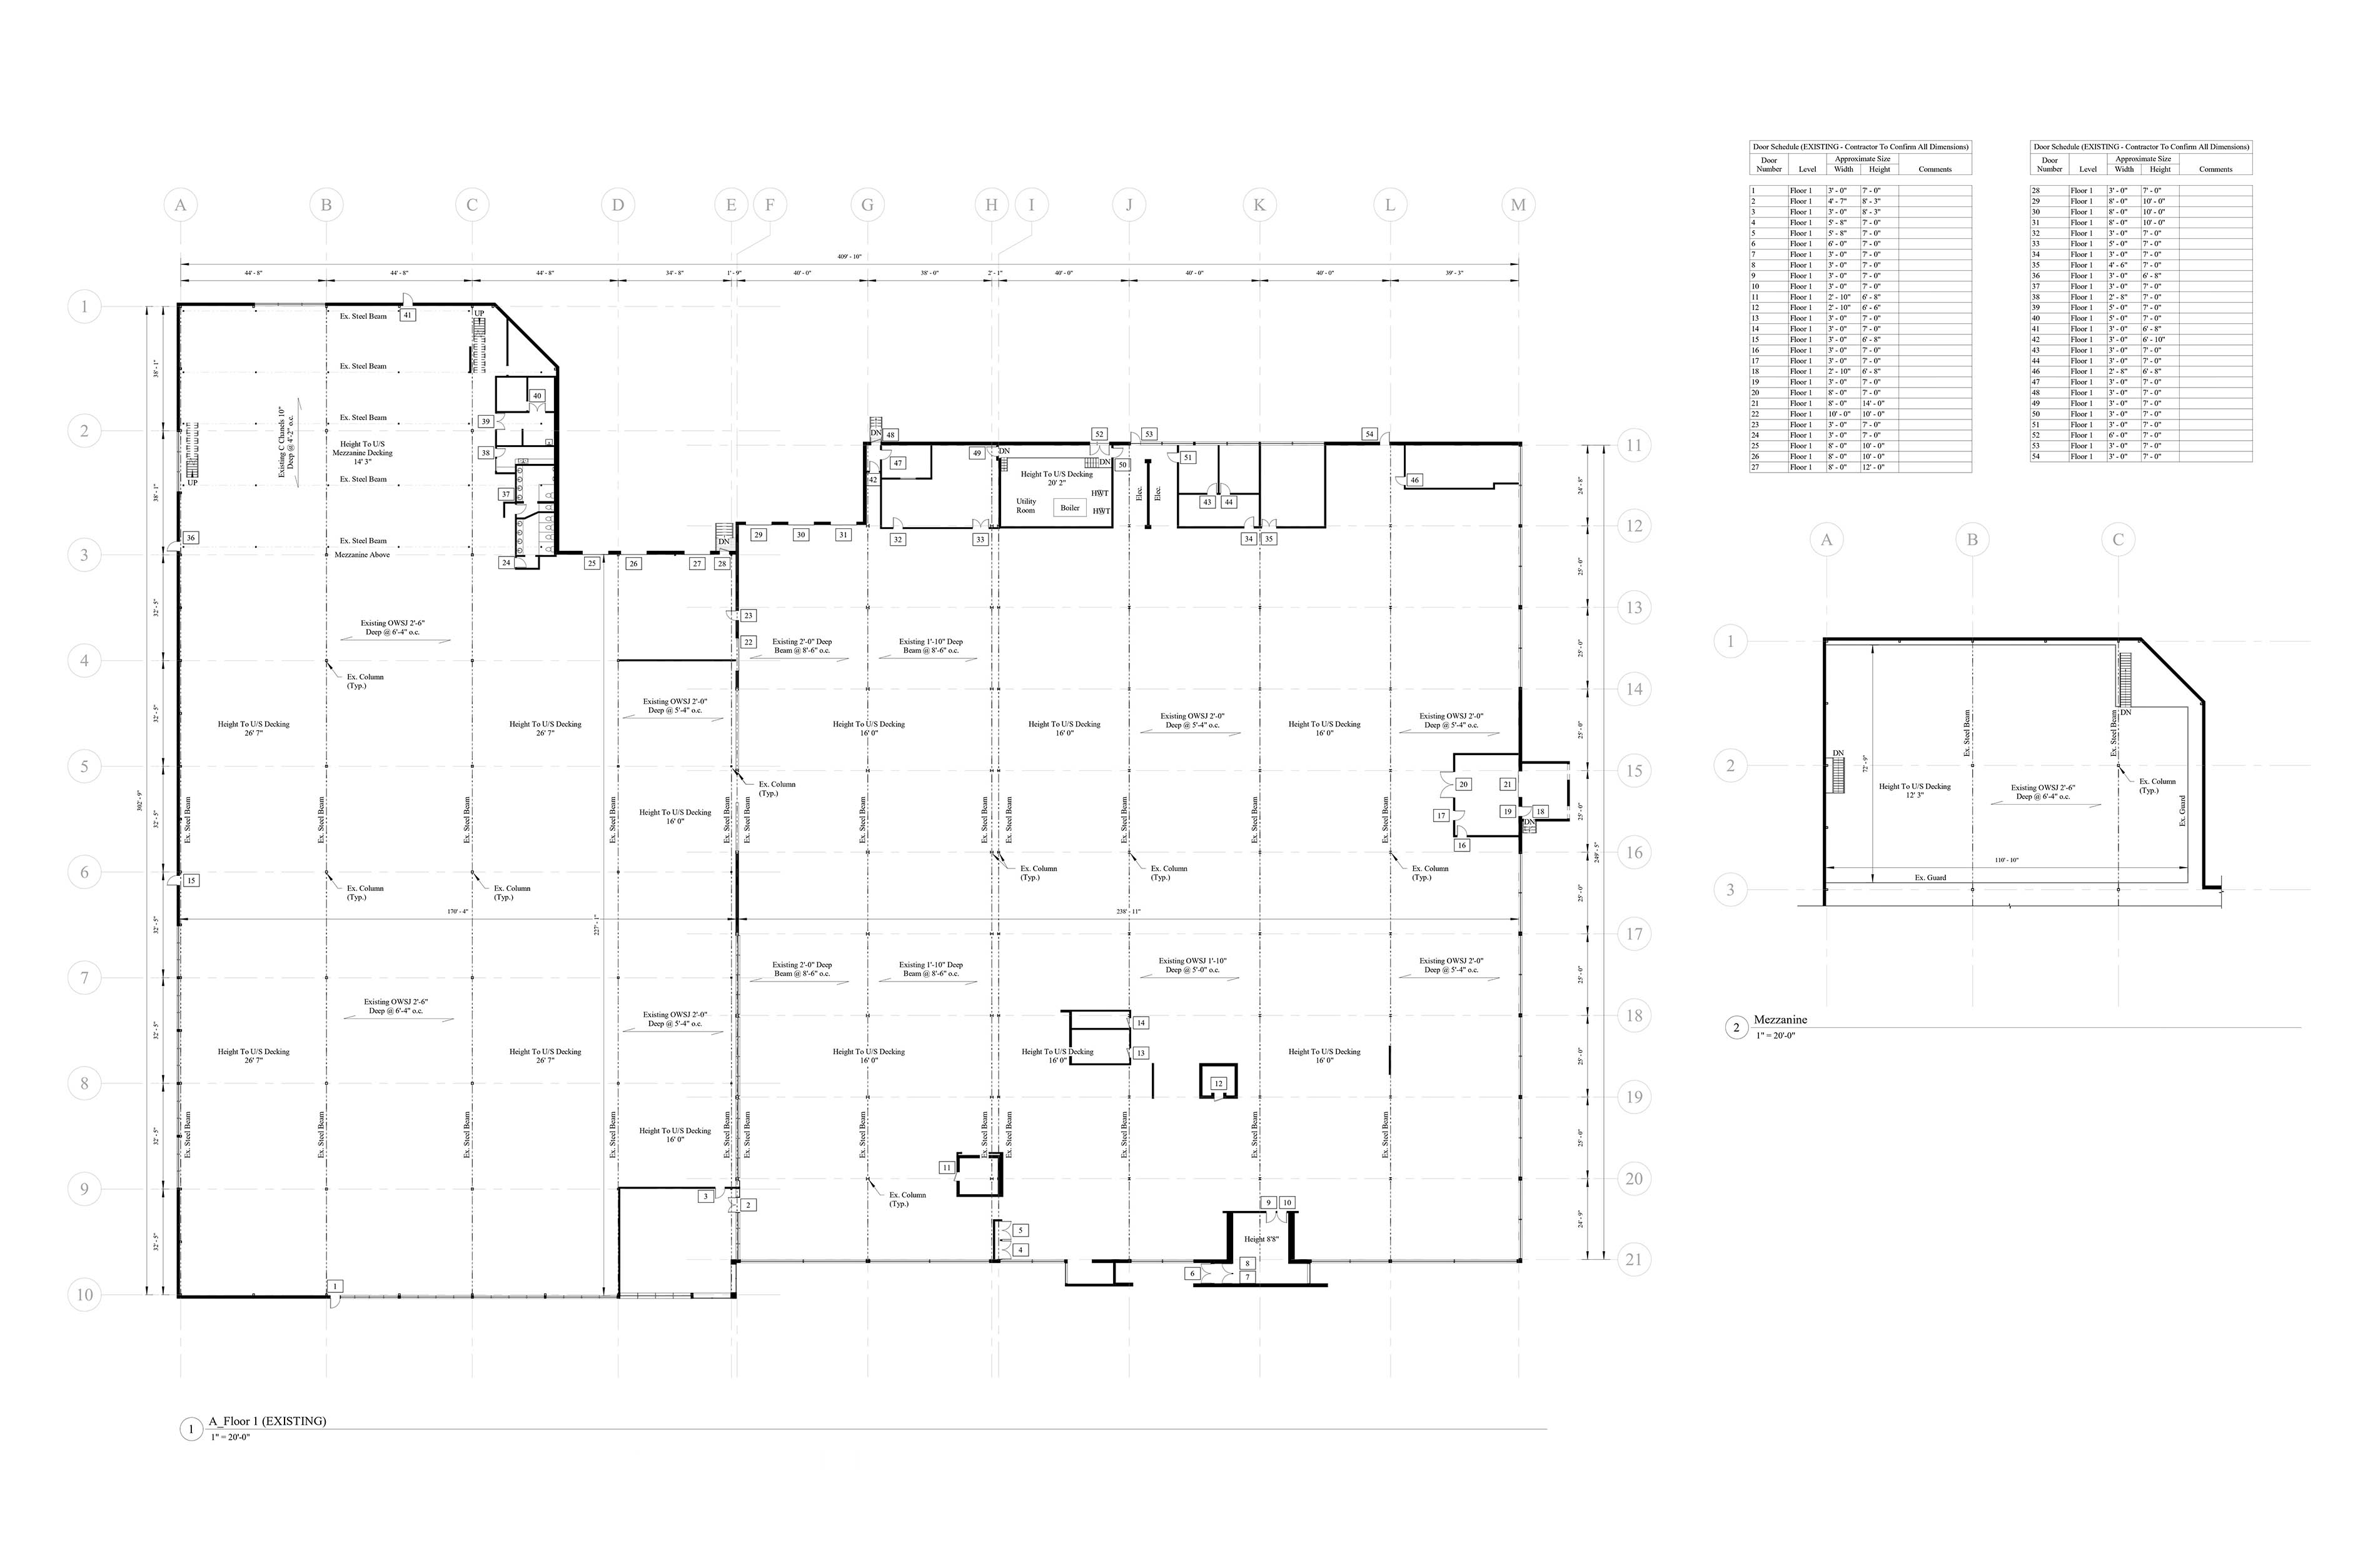 an AutoCad drawing of the existing floor plan and supporting data of the building.